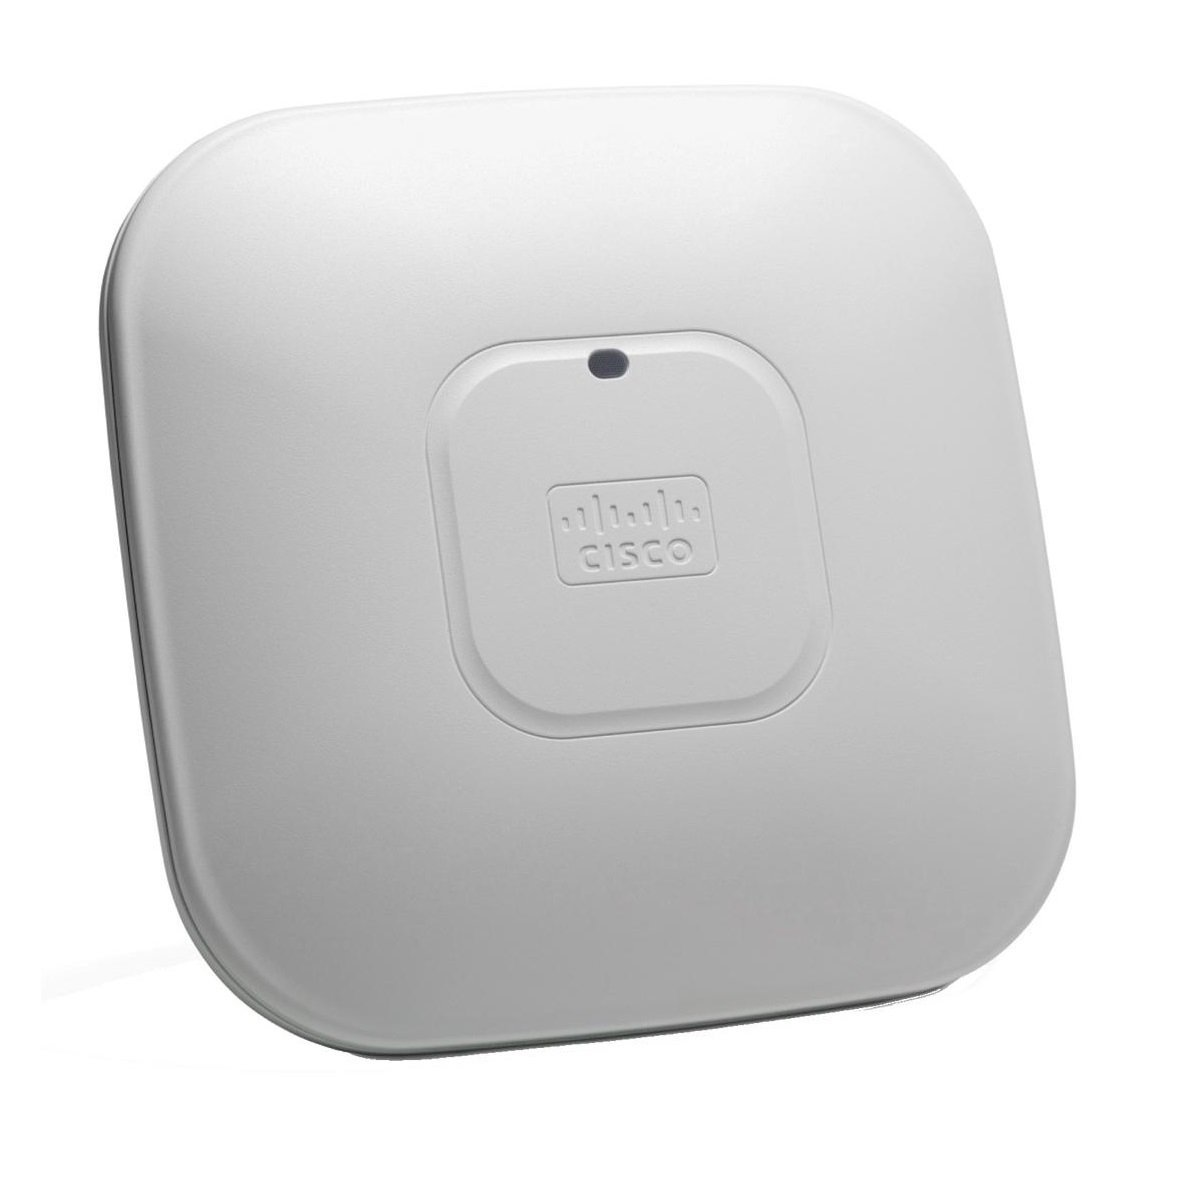 Access Point Cisco Aironet 1815i AIR-AP1815i-Z-K9 Dual-band, controller-based 802.11a/g/n/ac, Wave 2